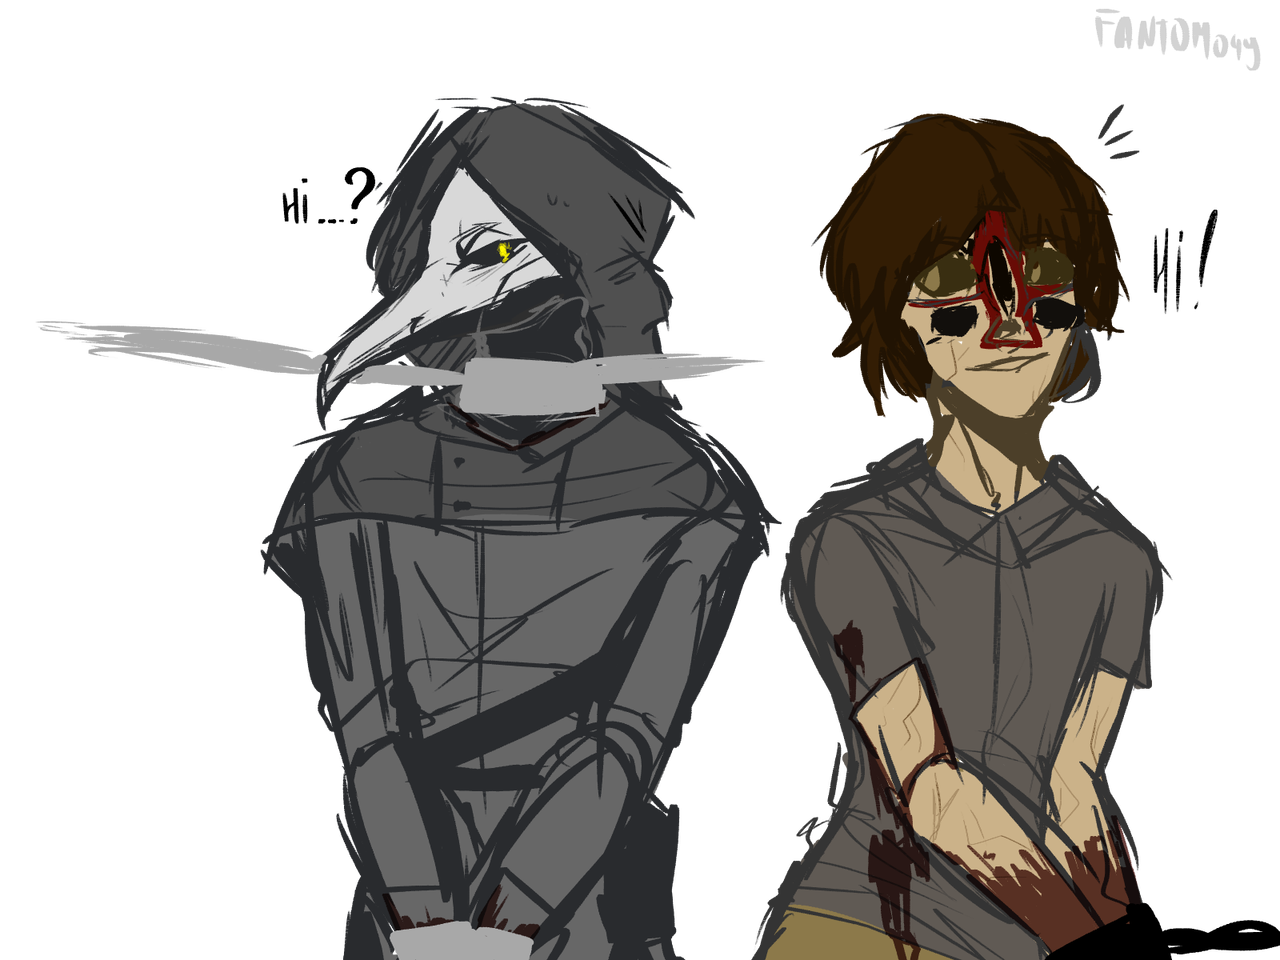 Scp 049 And Hum Scp 173 Aaa By Fantom049 On Deviantart With